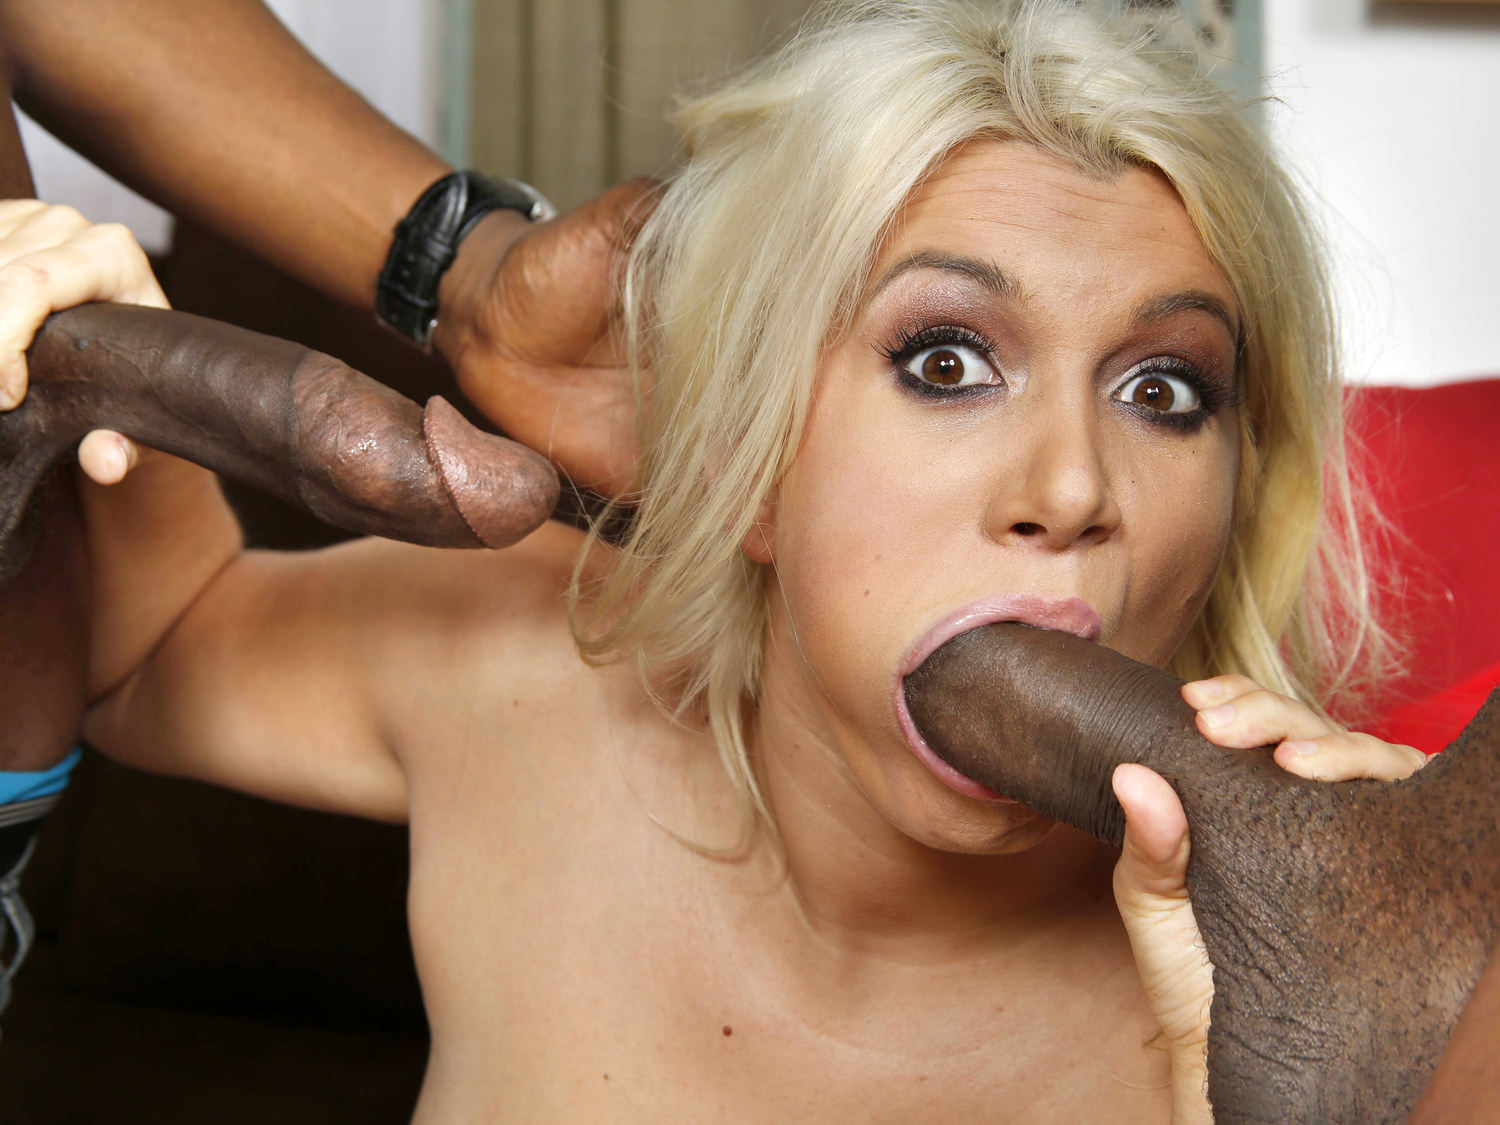 Anal,Interracial,Double Penetration,Blacks on Blondes,Big Cock,BBC,Dog Fart Network,HD Videos,Big Black Cocks,Double Black,Double,Big Black,Black